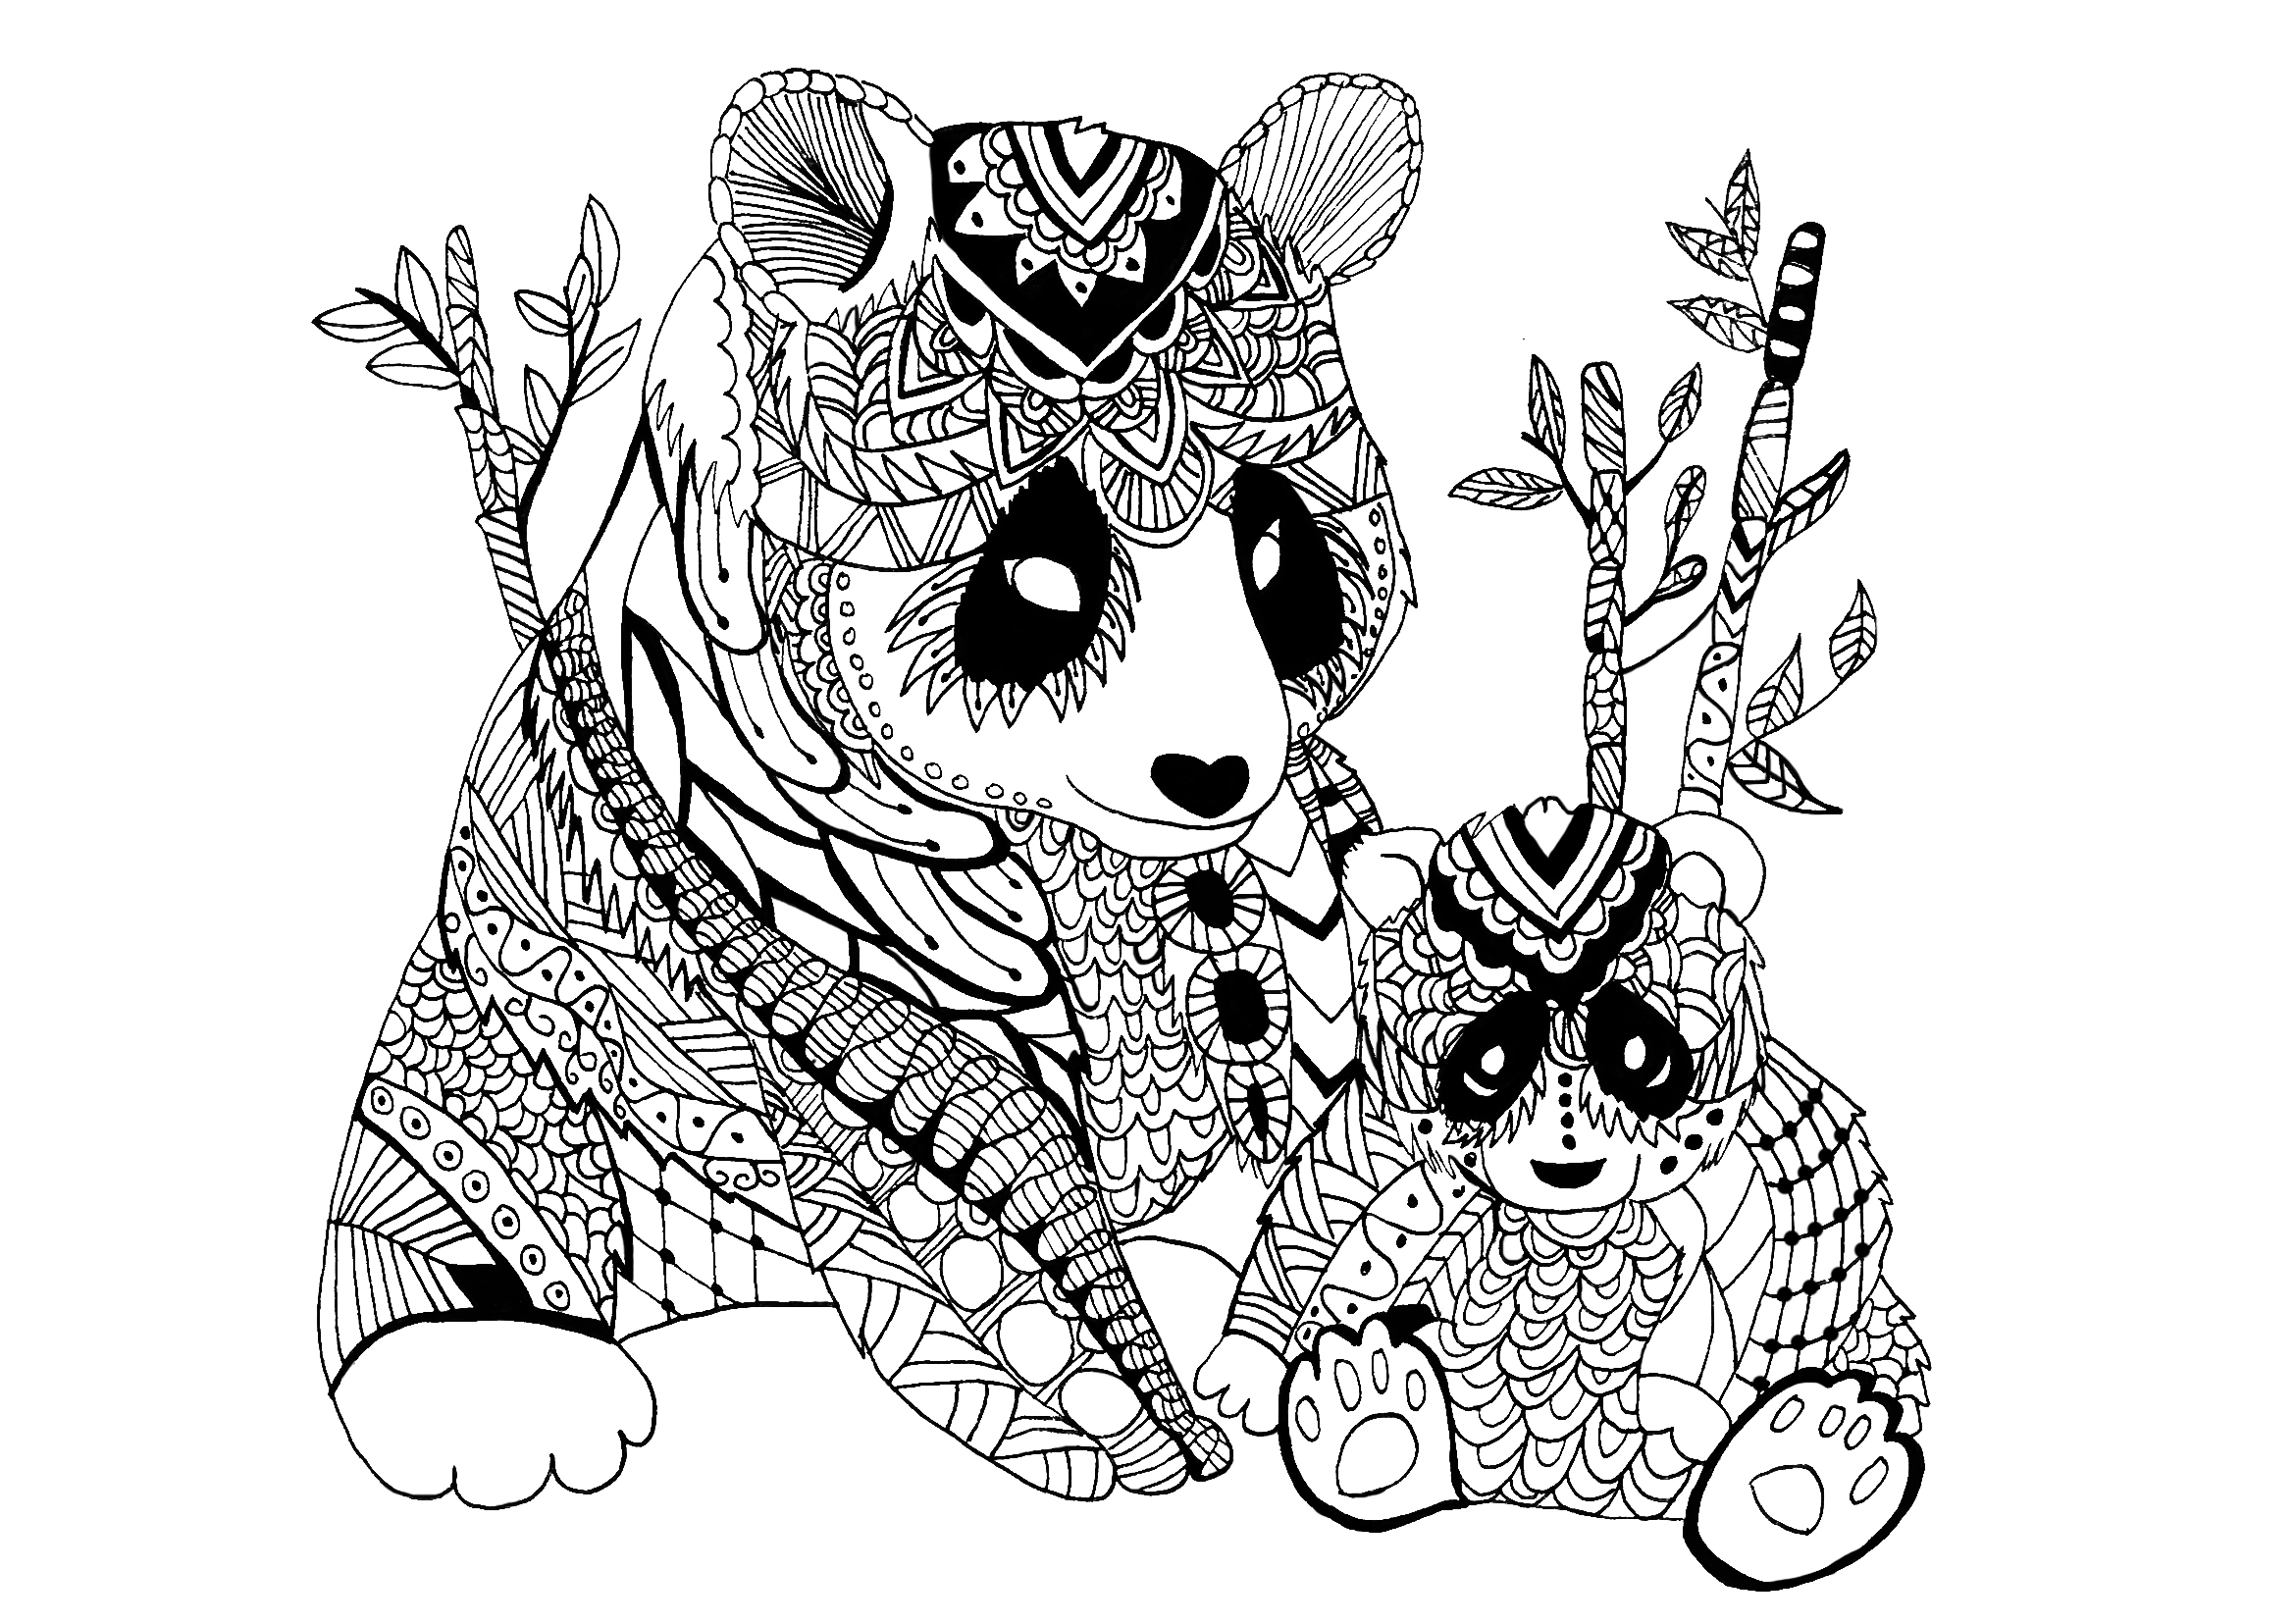 panda mother with baby drawn in zentangle style